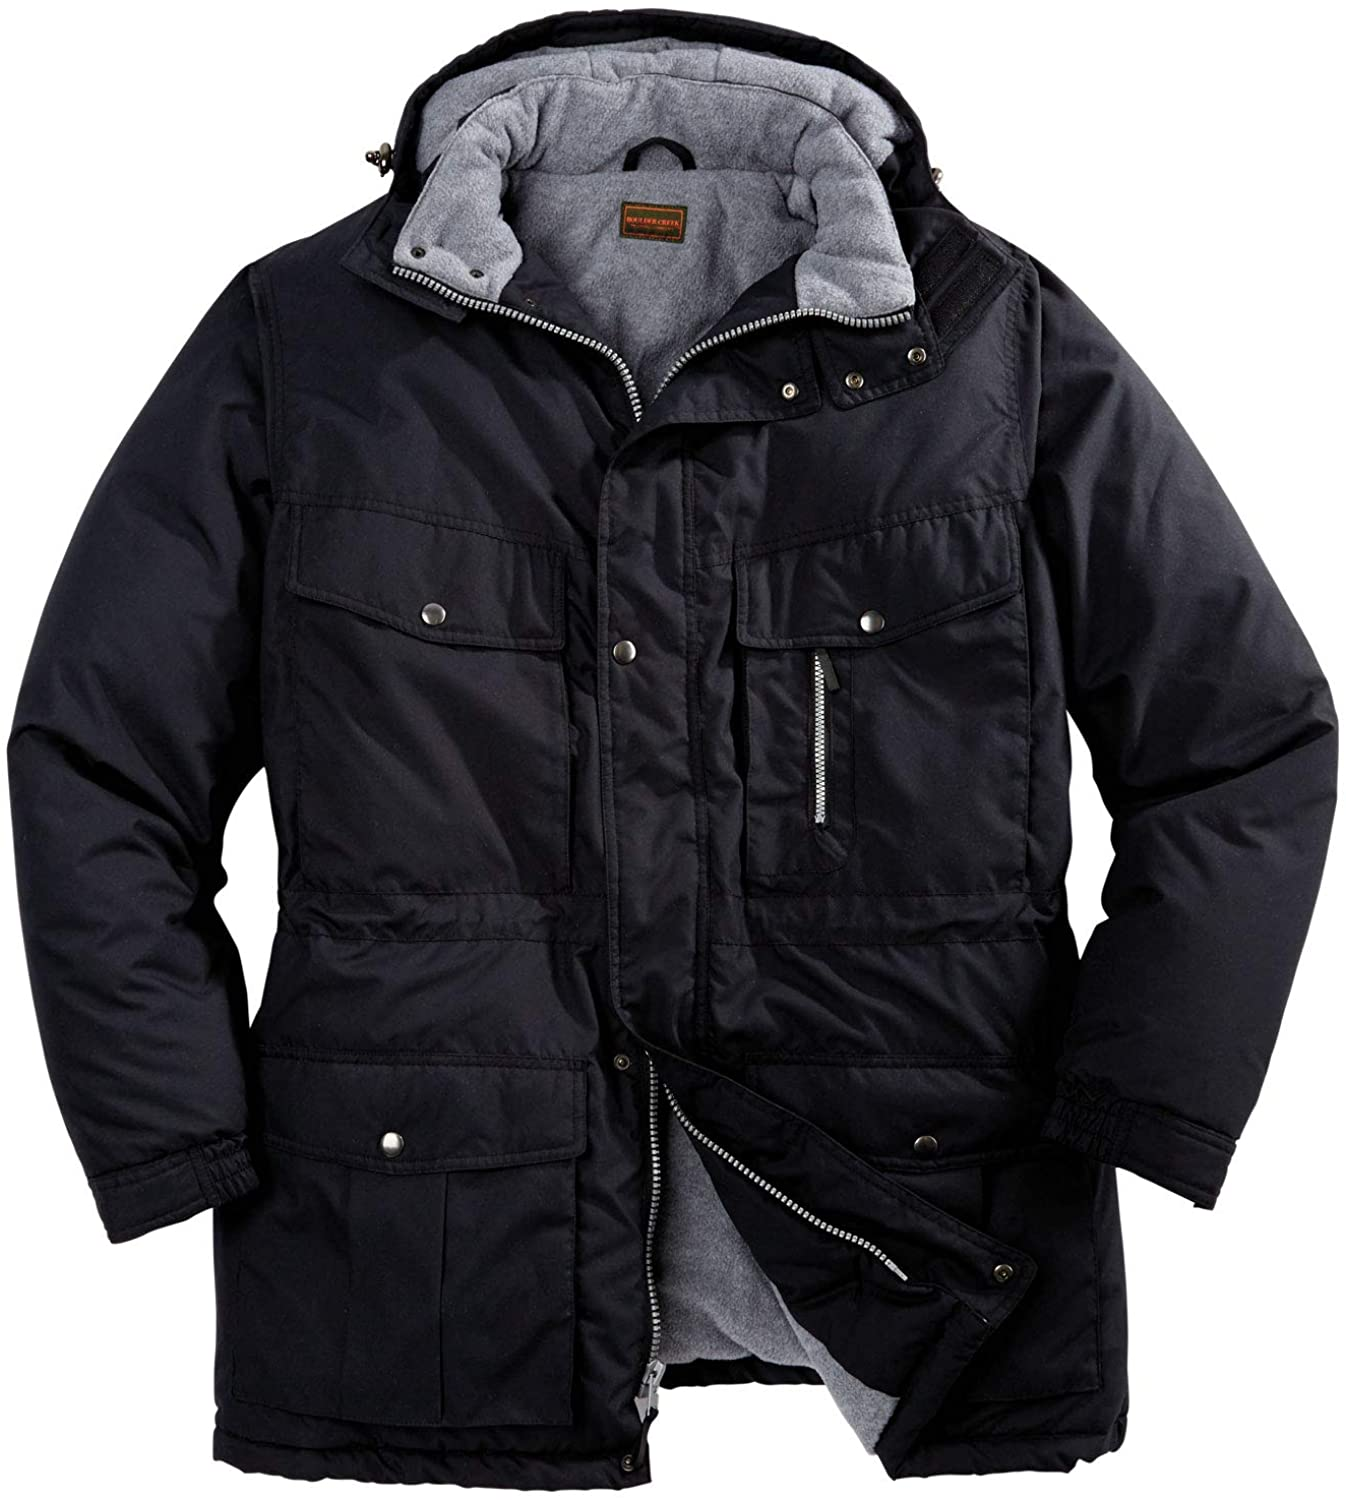 Boulder Creek by Kingsize Men's Big & Tall Fleece-Lined Parka with Detachable Hood and 6 Pockets Coat: Clothing